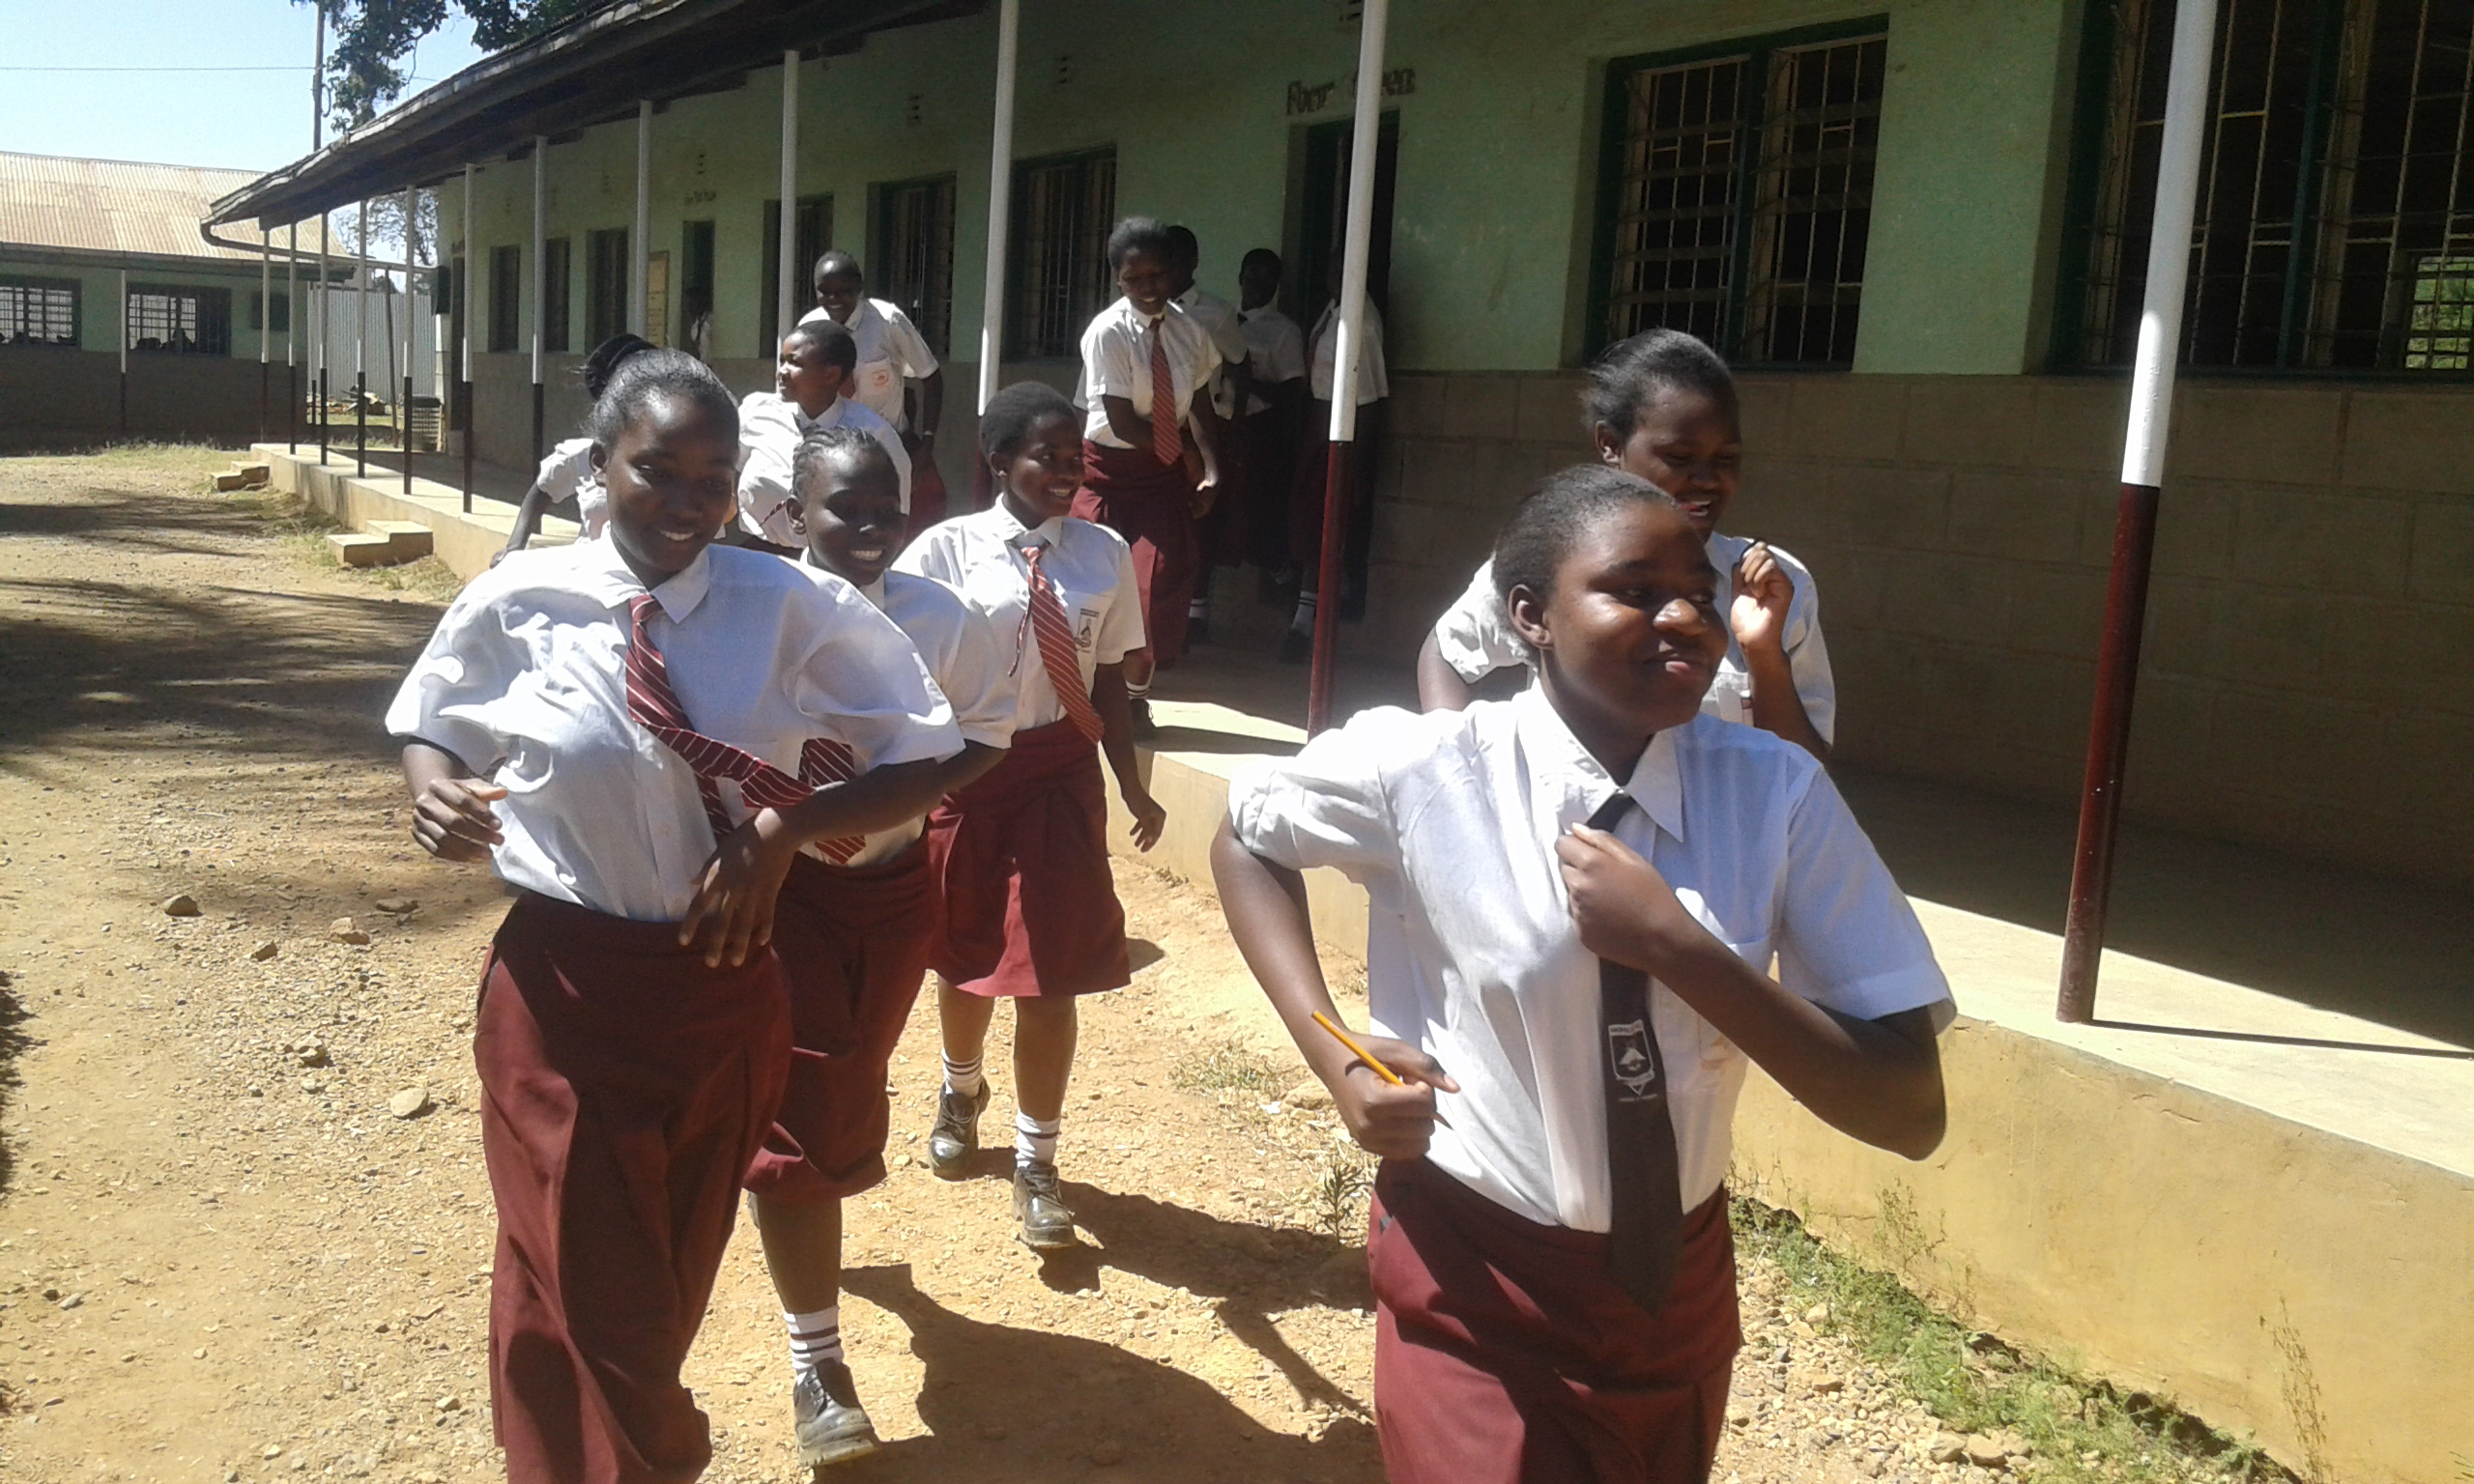 The Water Project : 13-kenya4664-students-rush-to-latrines-at-break